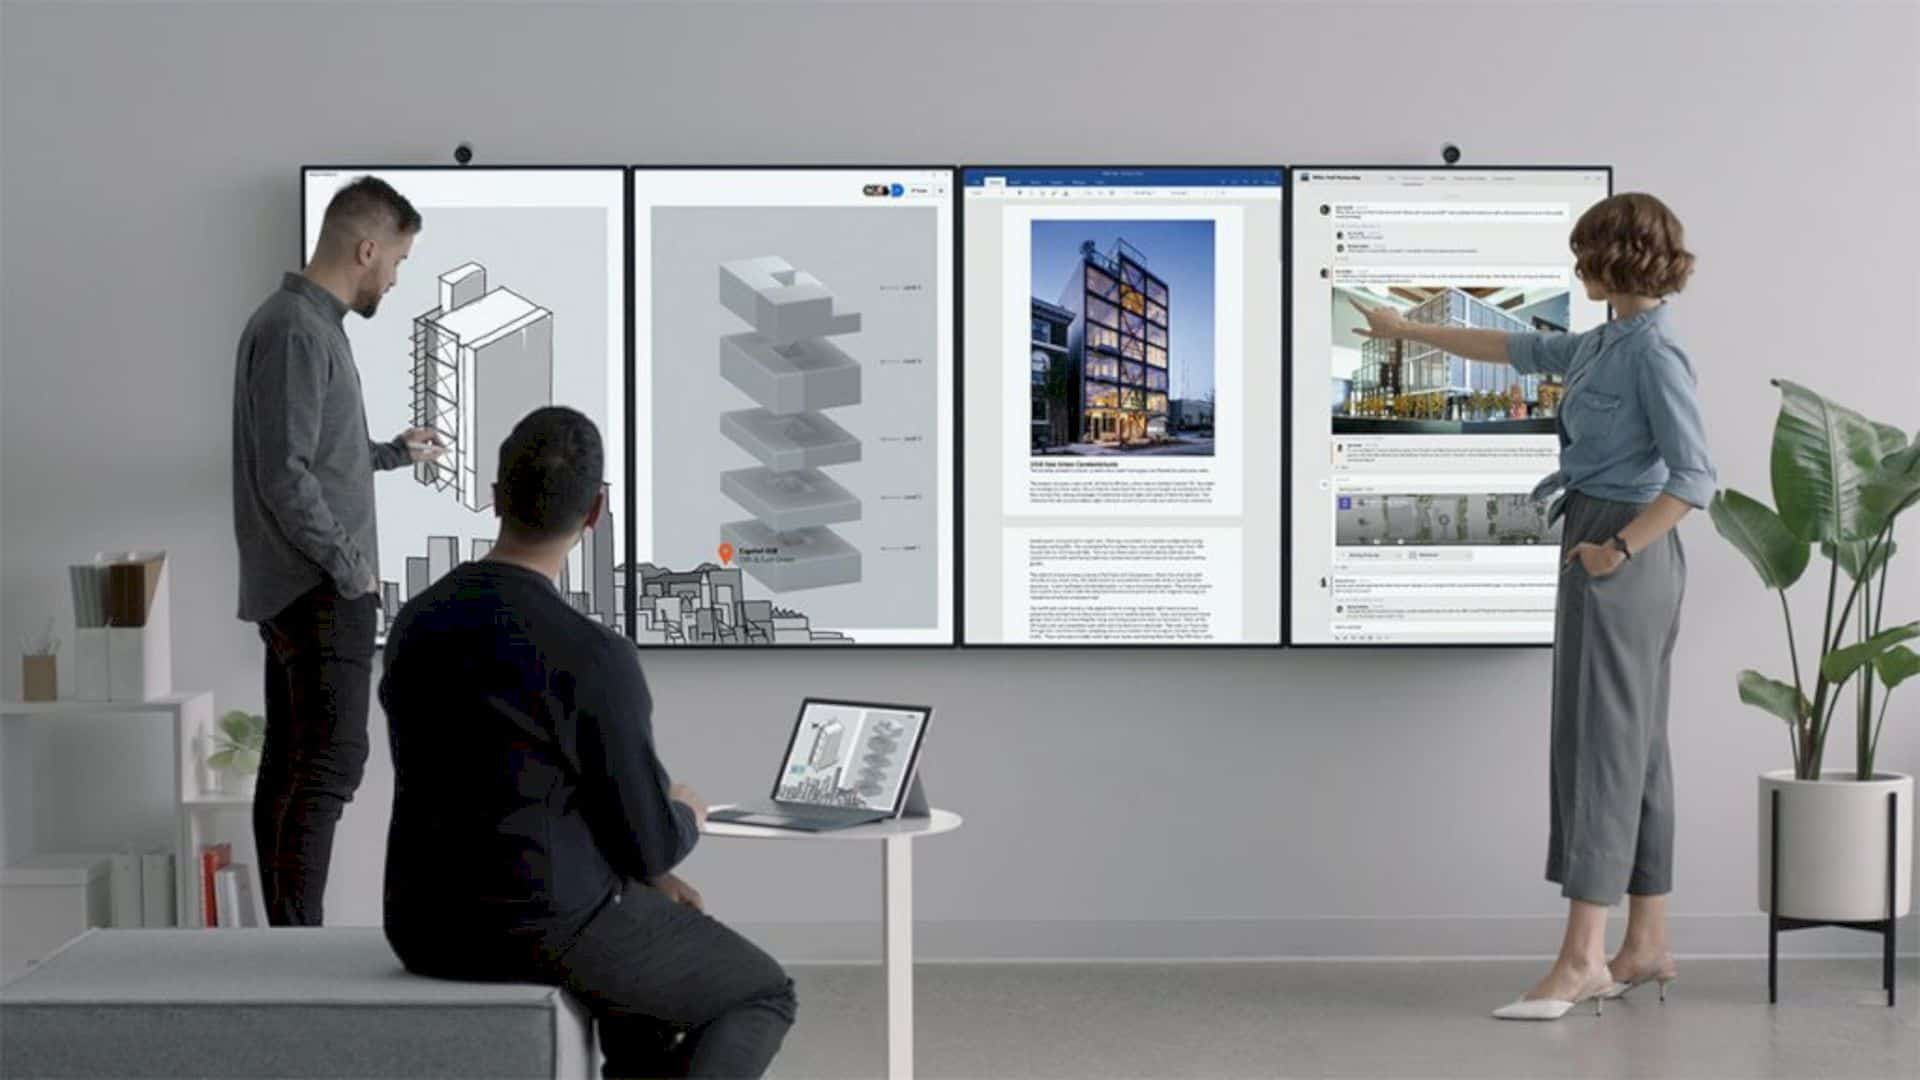 Surface Hub 2: For an Office of the Future